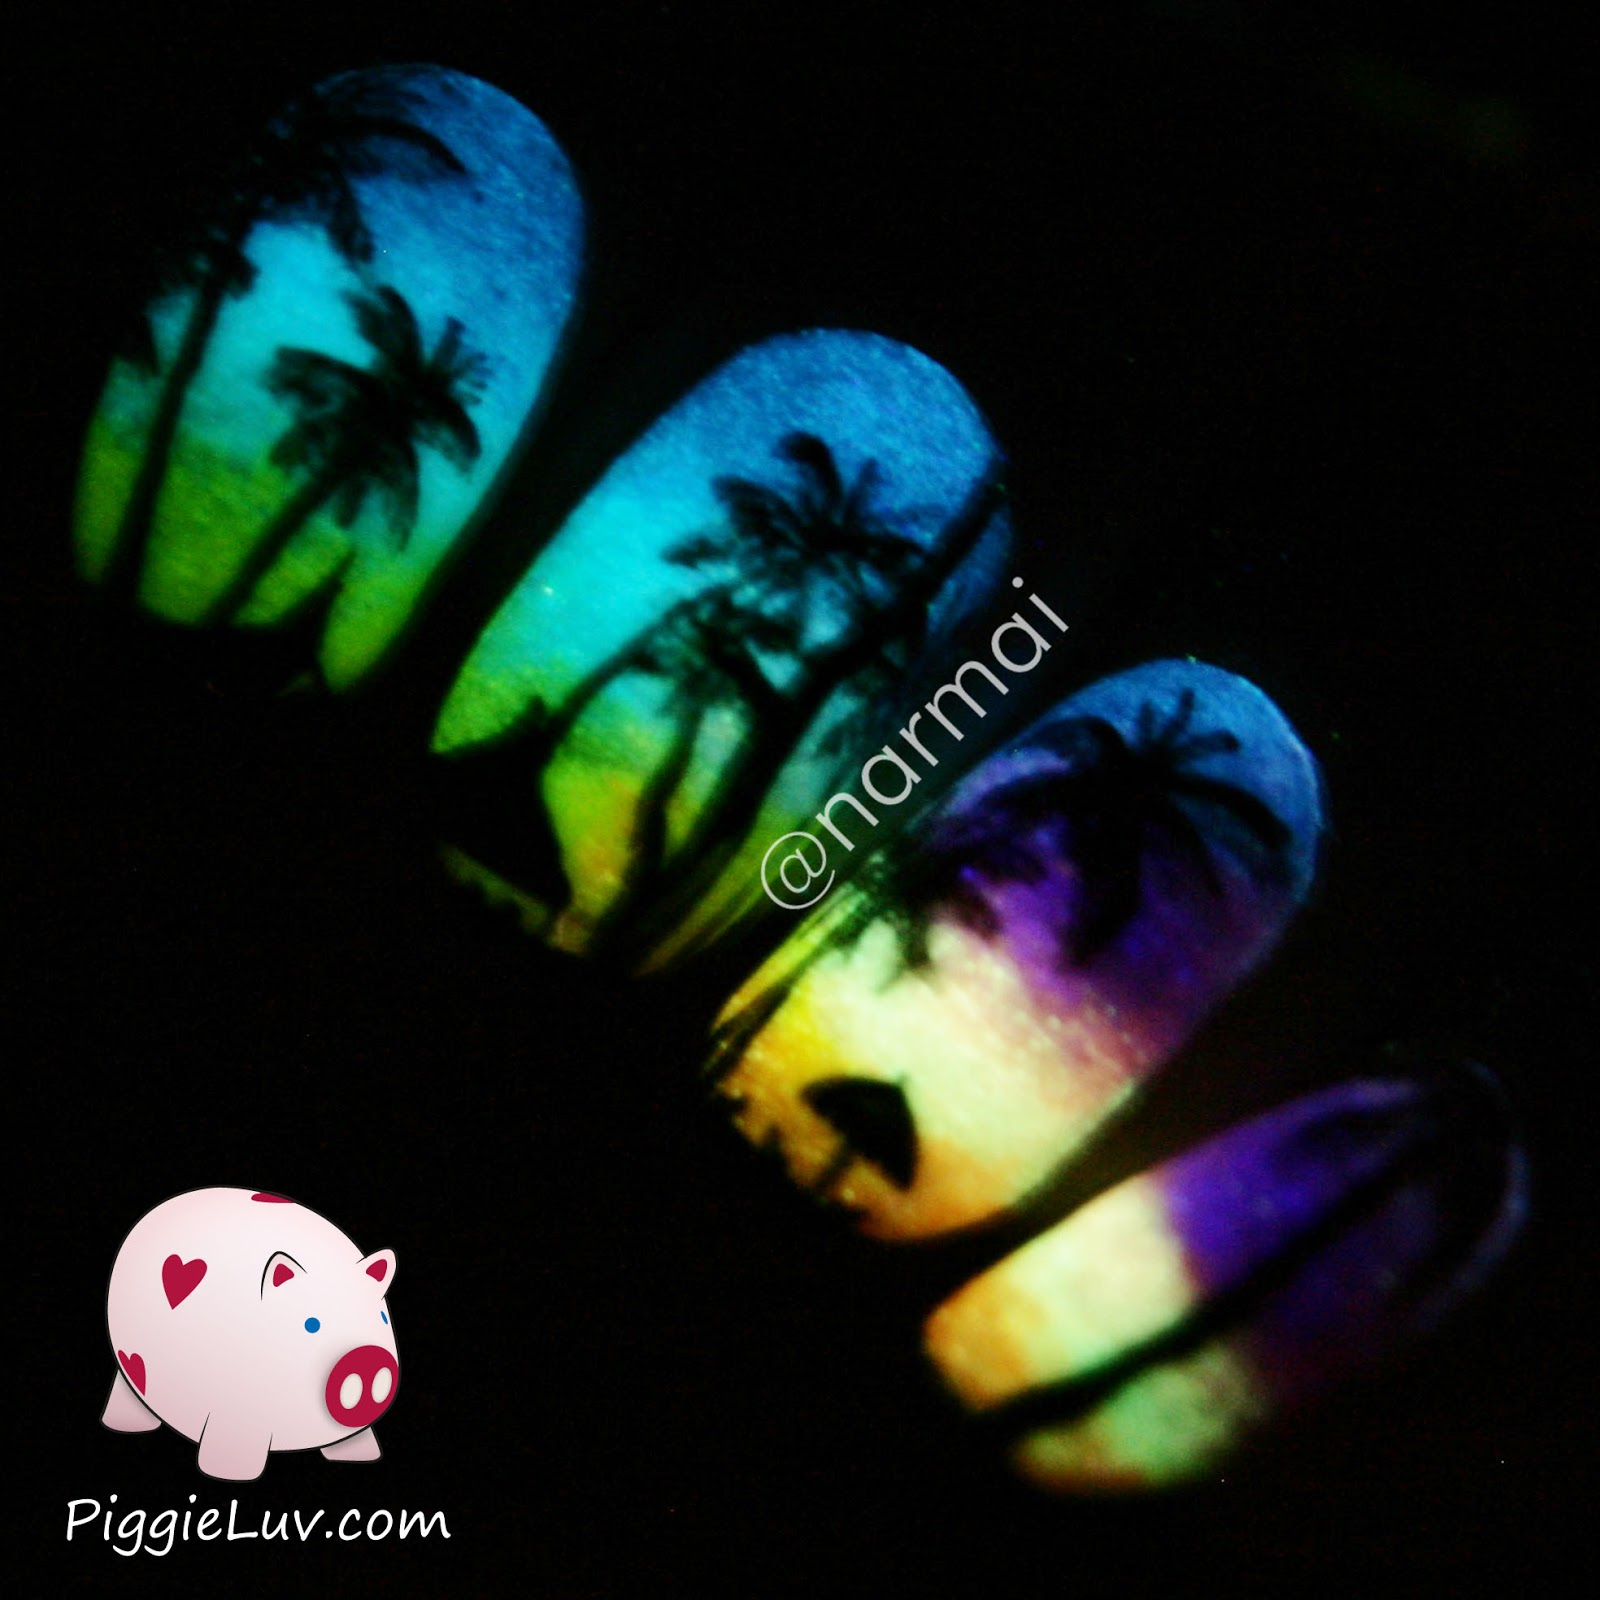 PiggieLuv: 5 tips for taking glow in the dark nail photos!